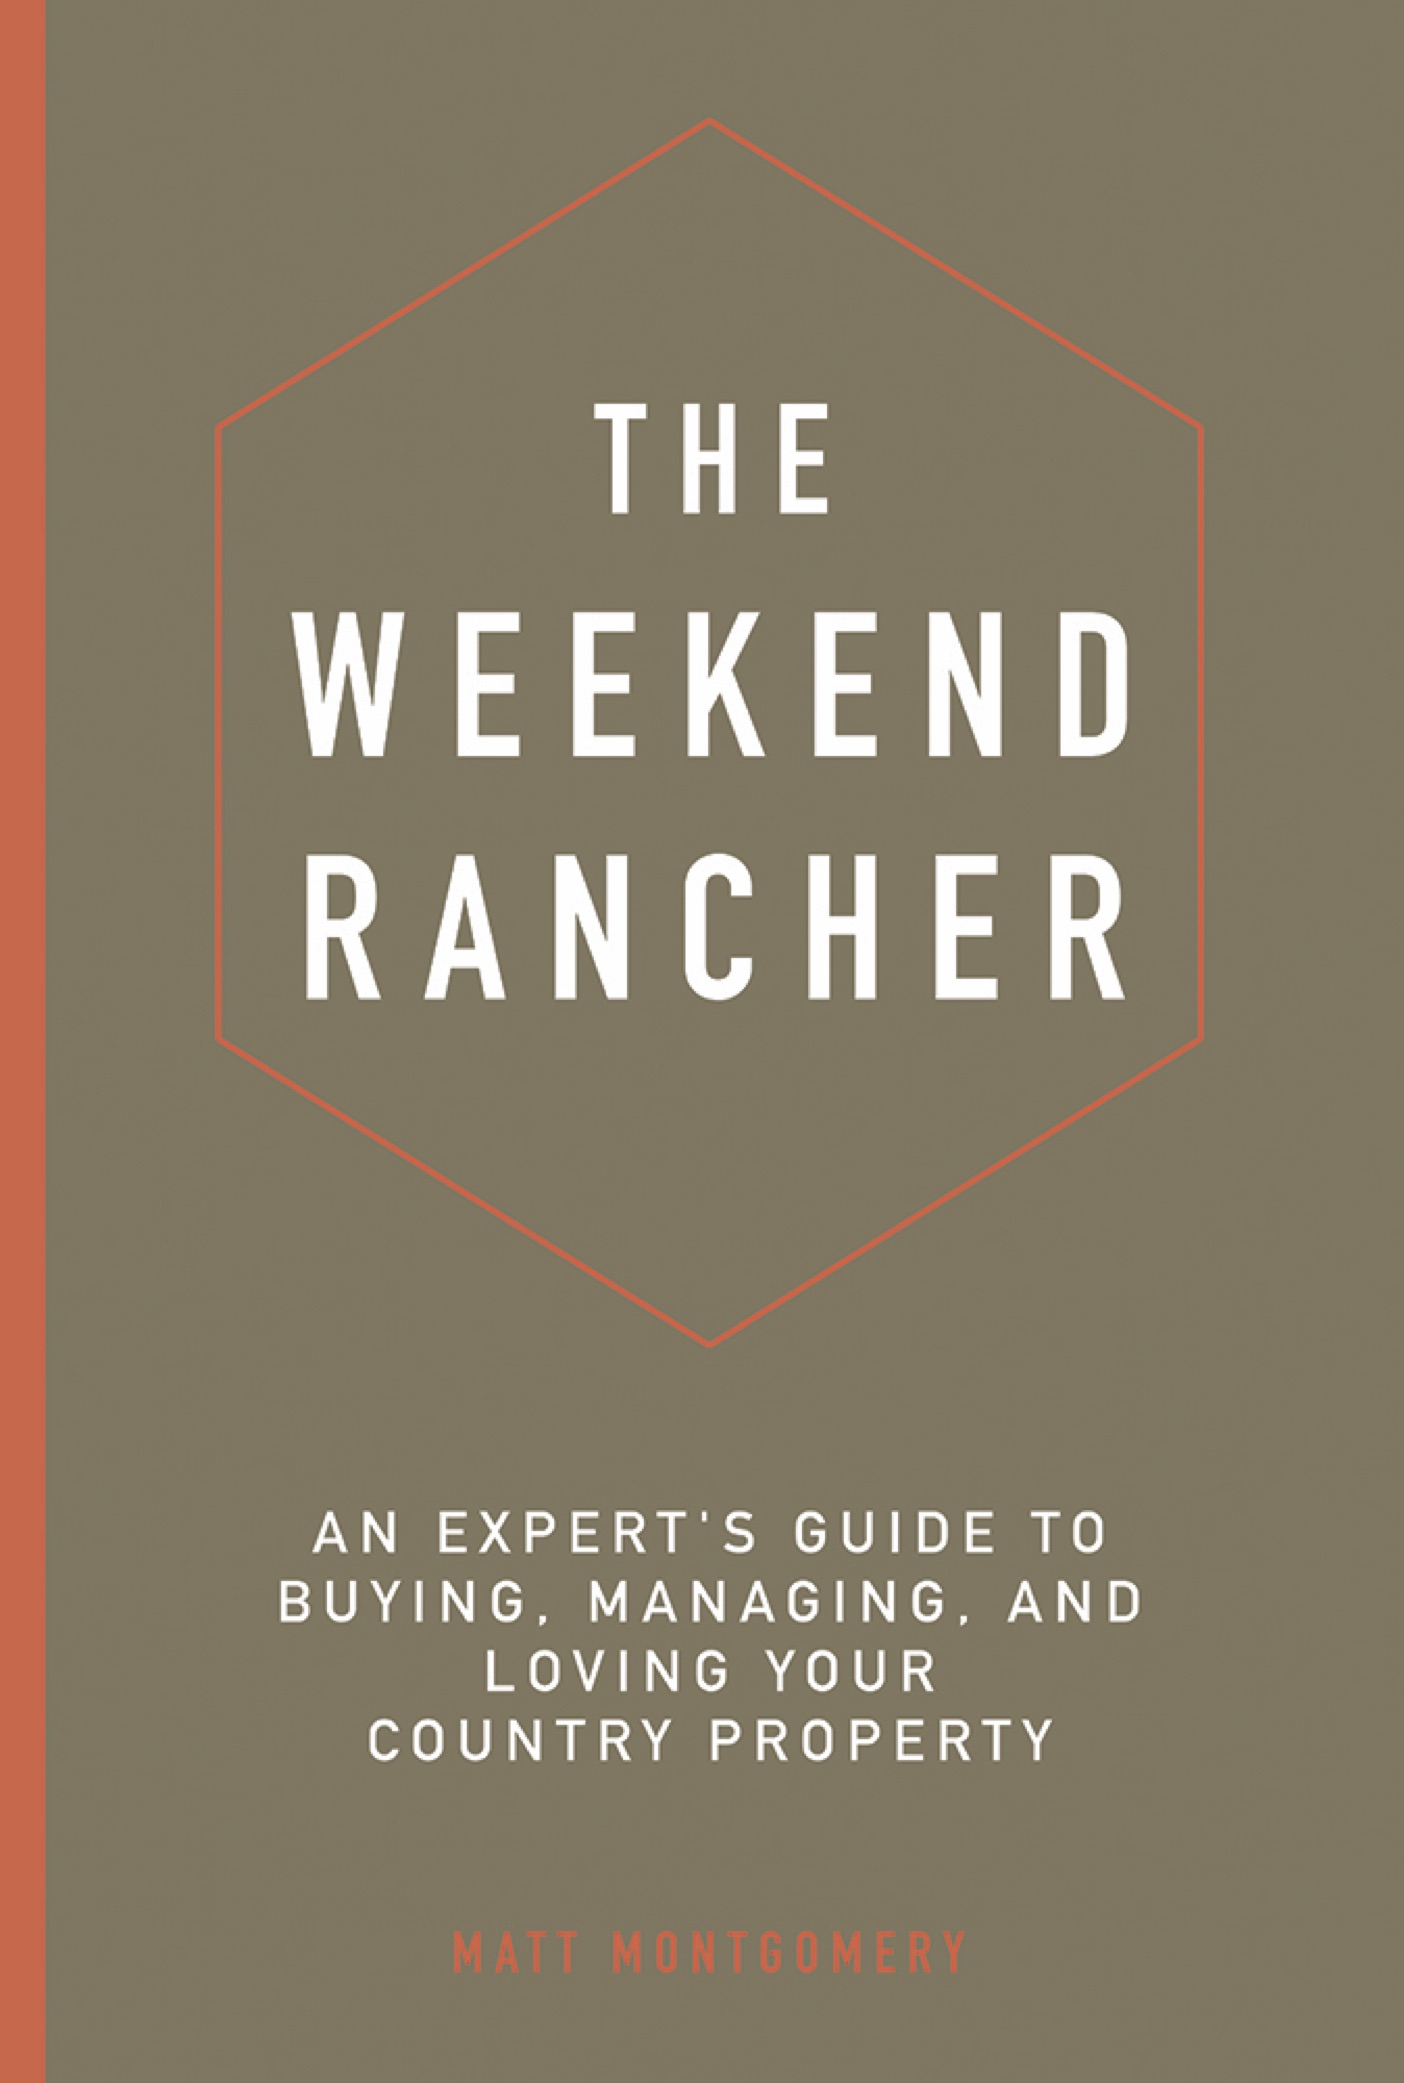 The Weekend Rancher Cover-front72dpi.jpg